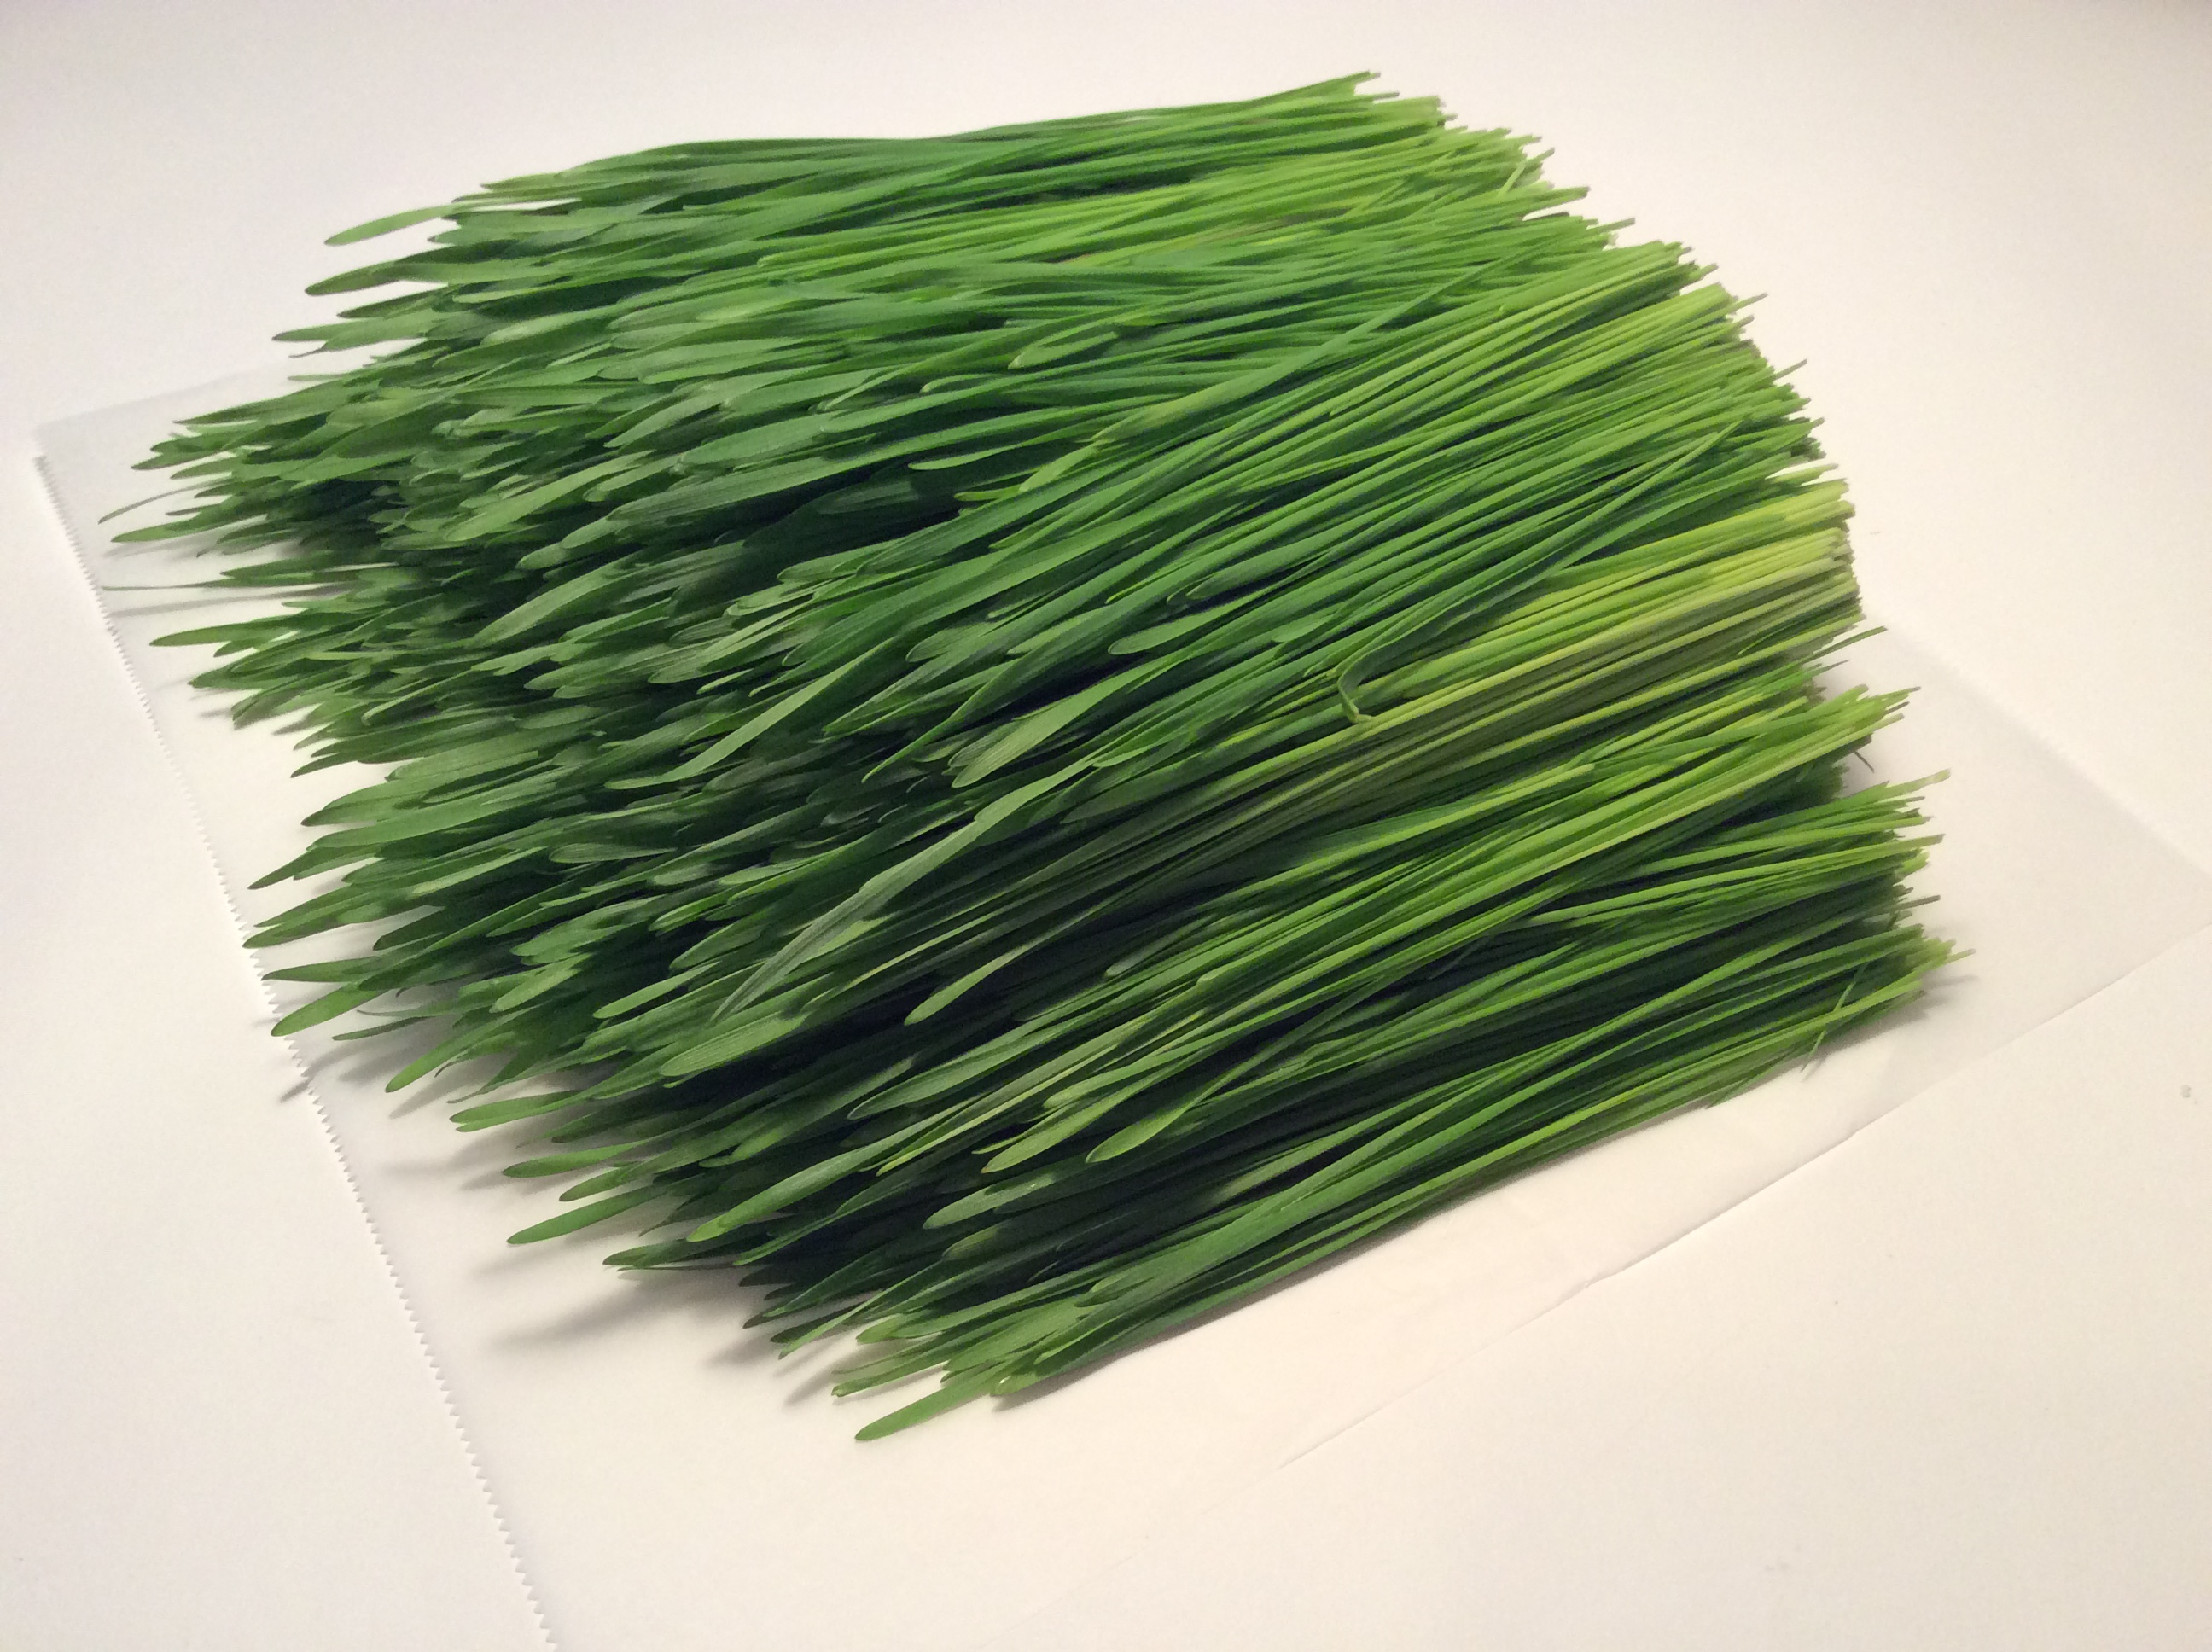 The Wonderful World of Wheatgrass!